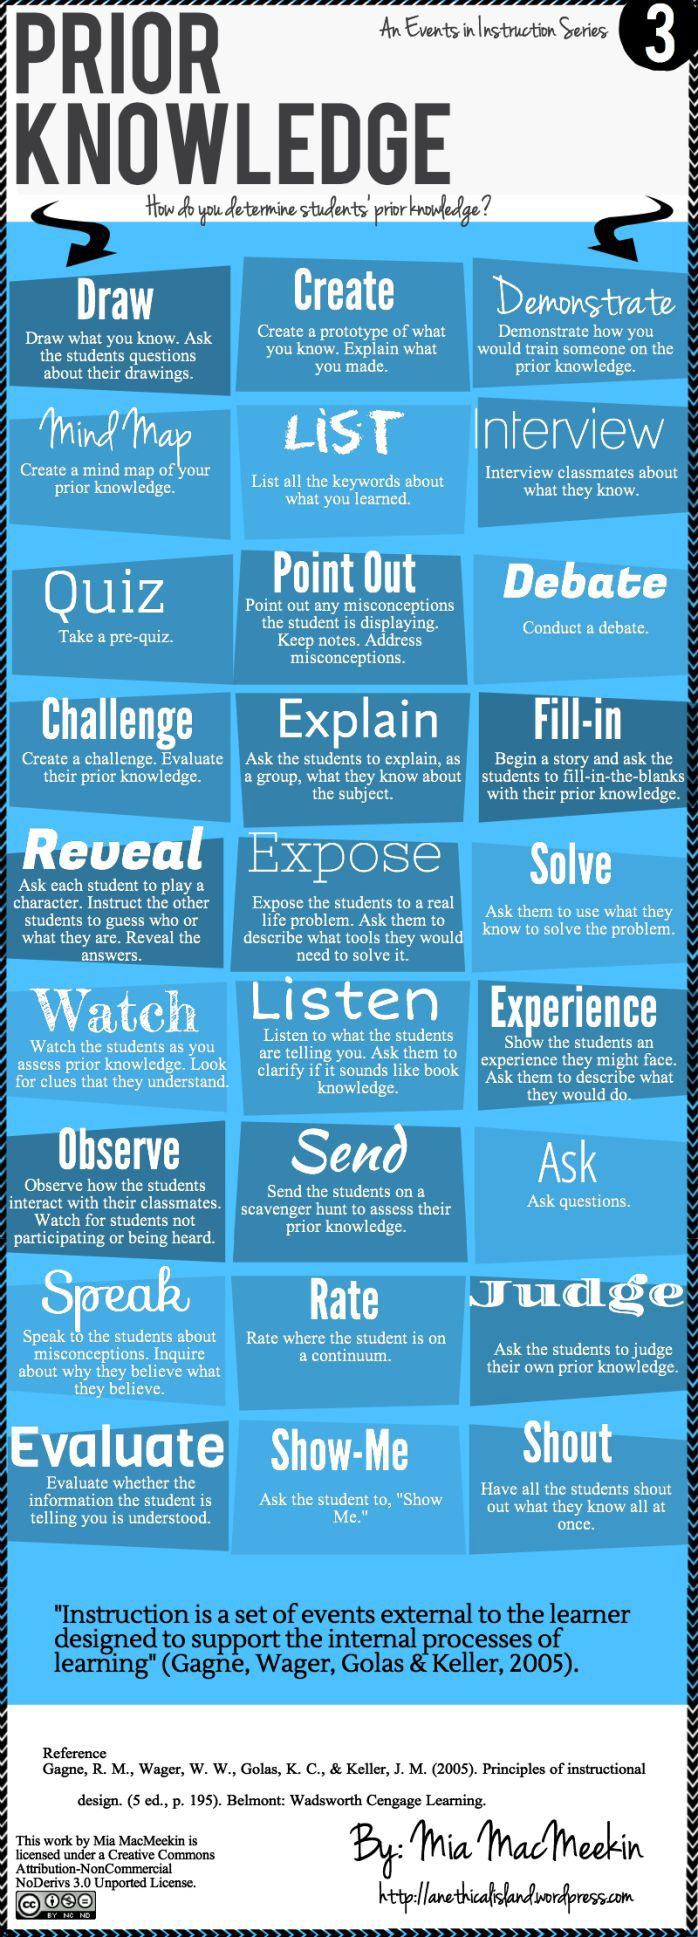 62 best education infographics images on pinterest info graphics the how to stimulate recall of prior learning infographic refers to gagns event of instruction and presents ways teachers can determine students prior fandeluxe Images